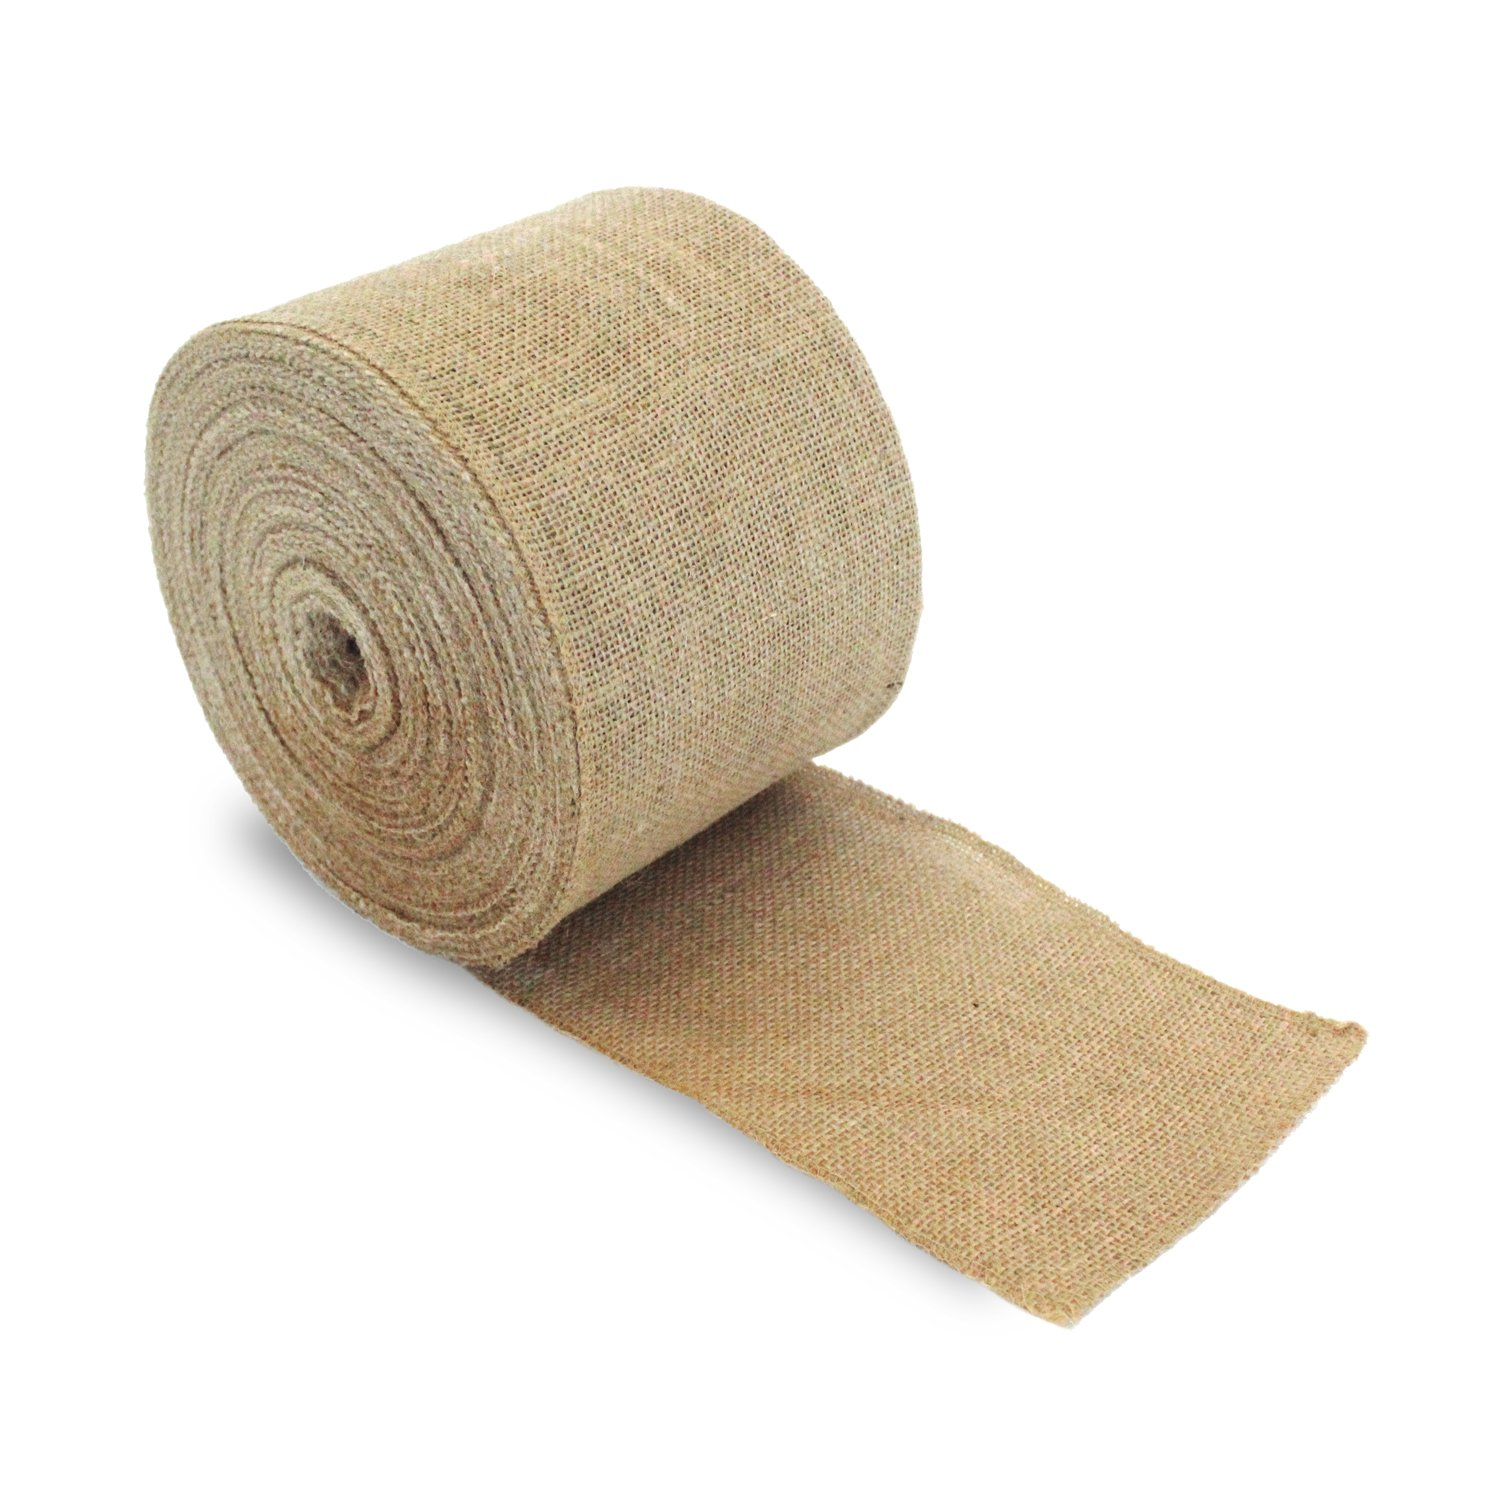 Craft Burlap Ribbon No Fray Edges 6 Inches by 50 Yards Wreath Ribbon by Burlap and Beyond (Image #1)